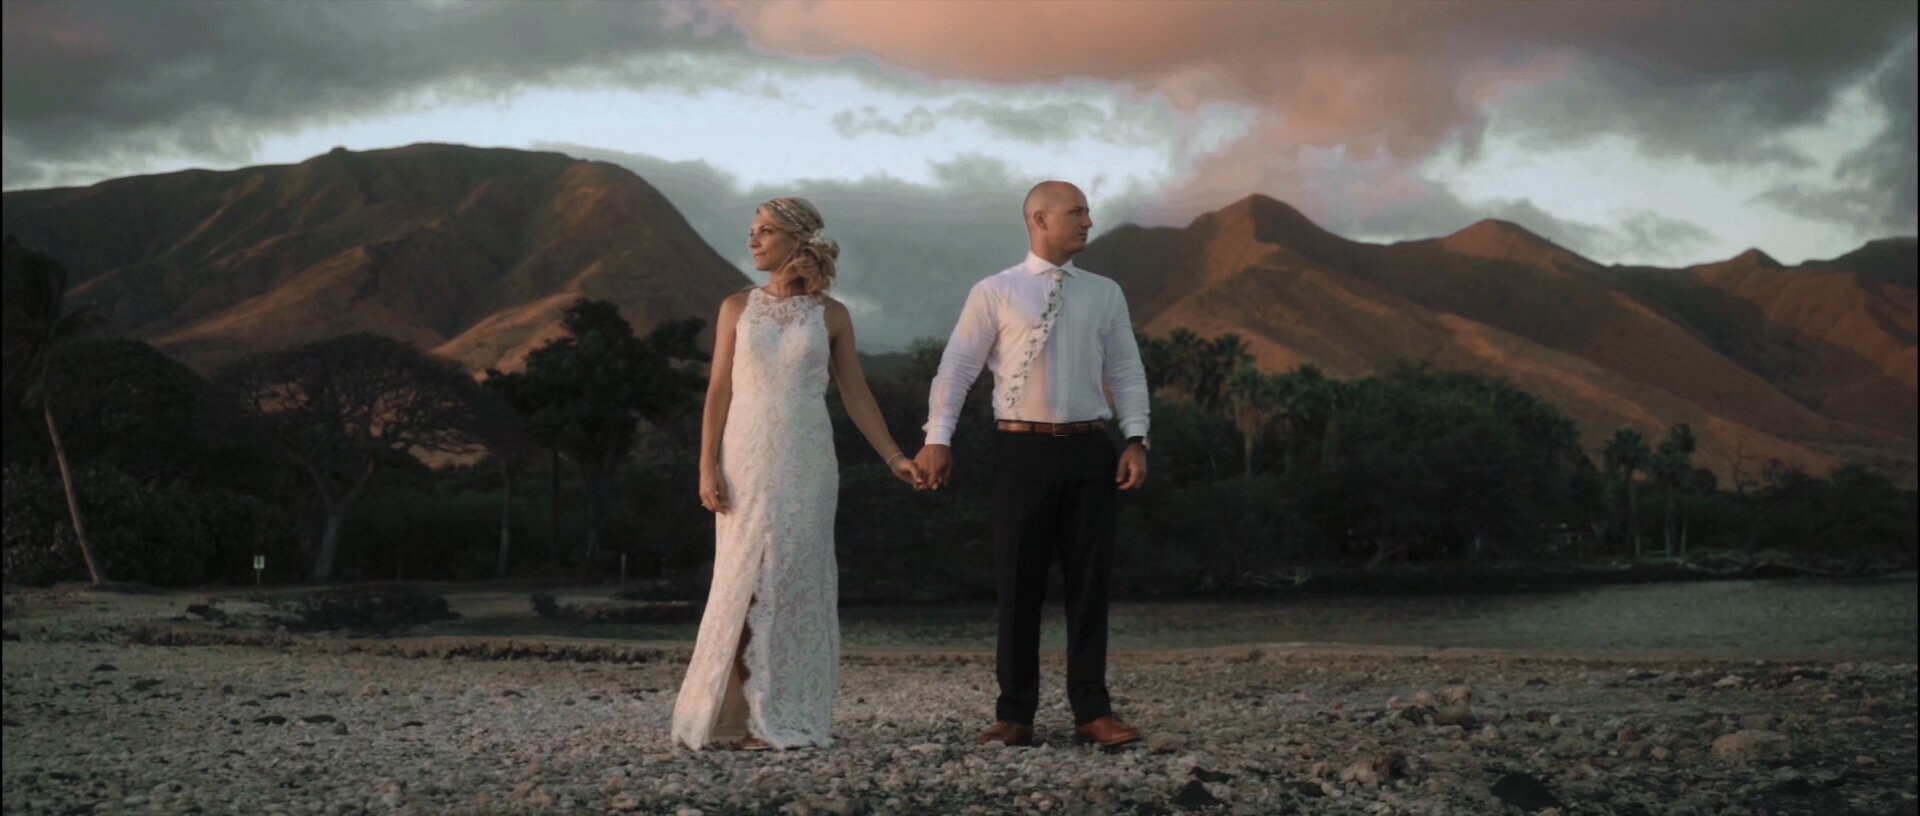 Bride and Groom at the Olowalu Plantation House Pier with mountains backdrop